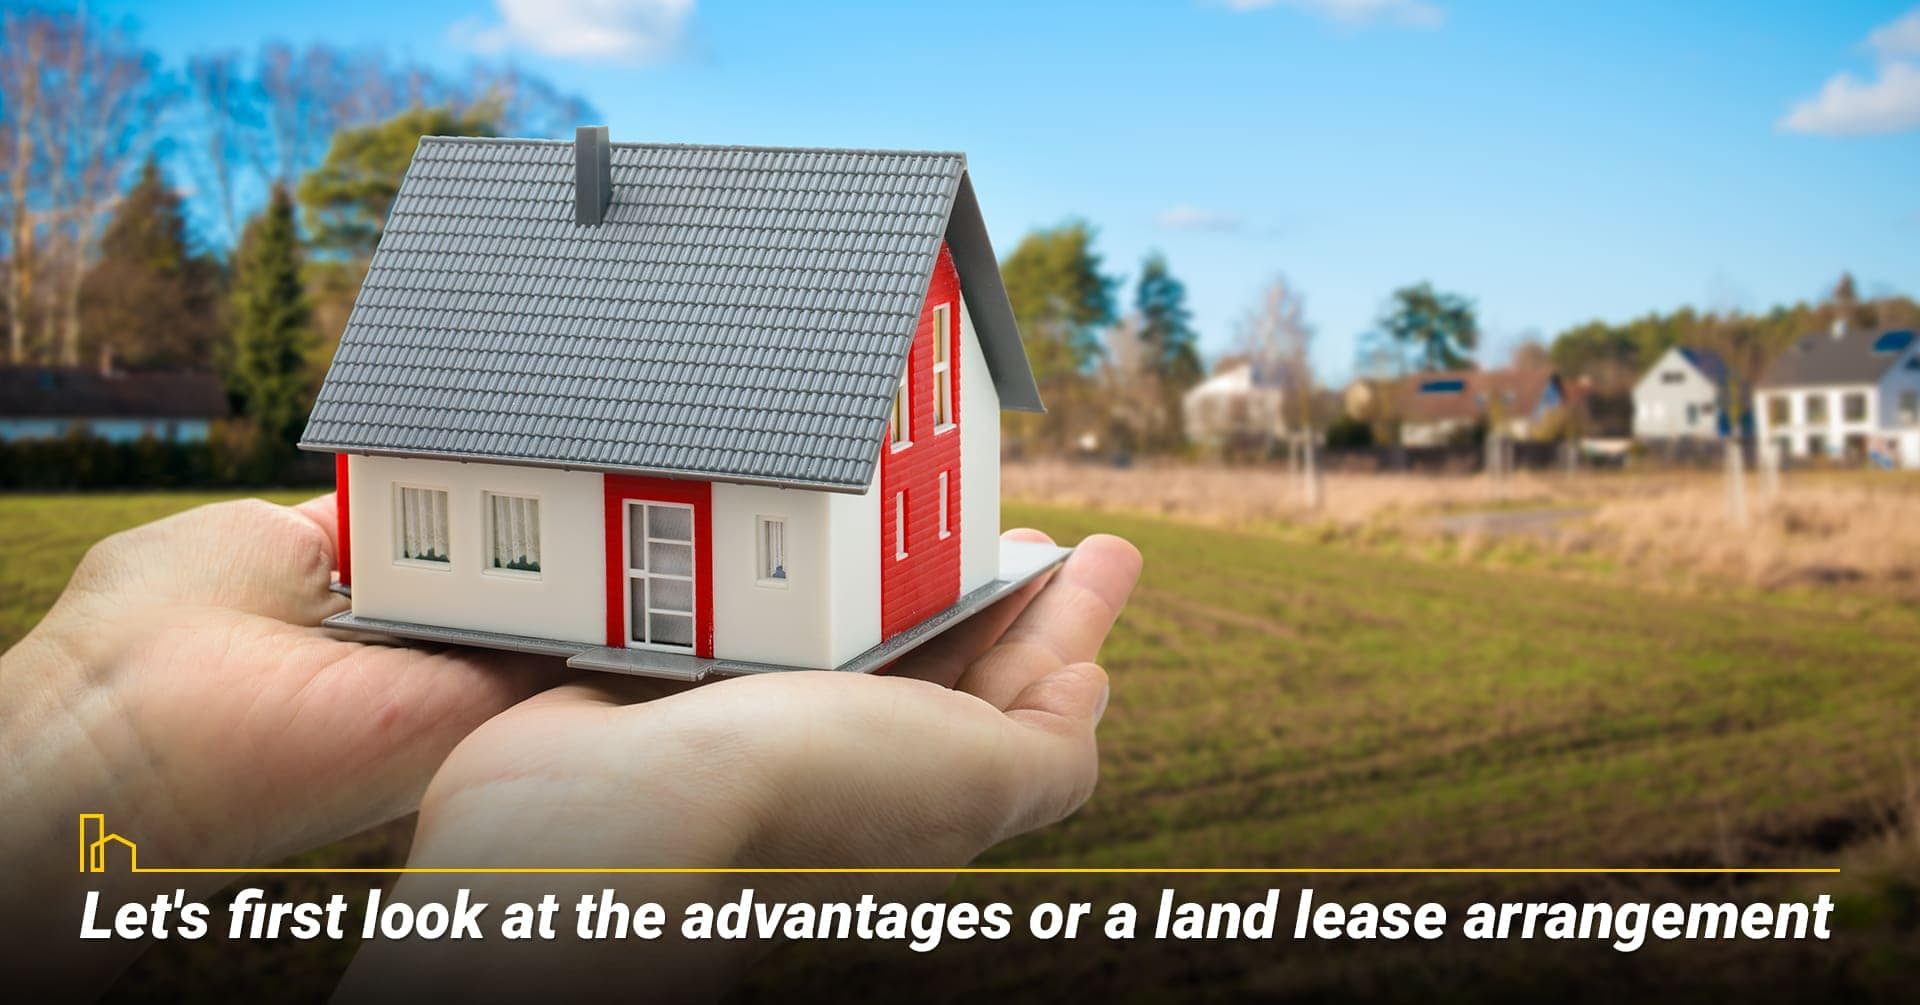 Let's first look at the advantages of a land lease arrangement, the pros of a land lease agreement